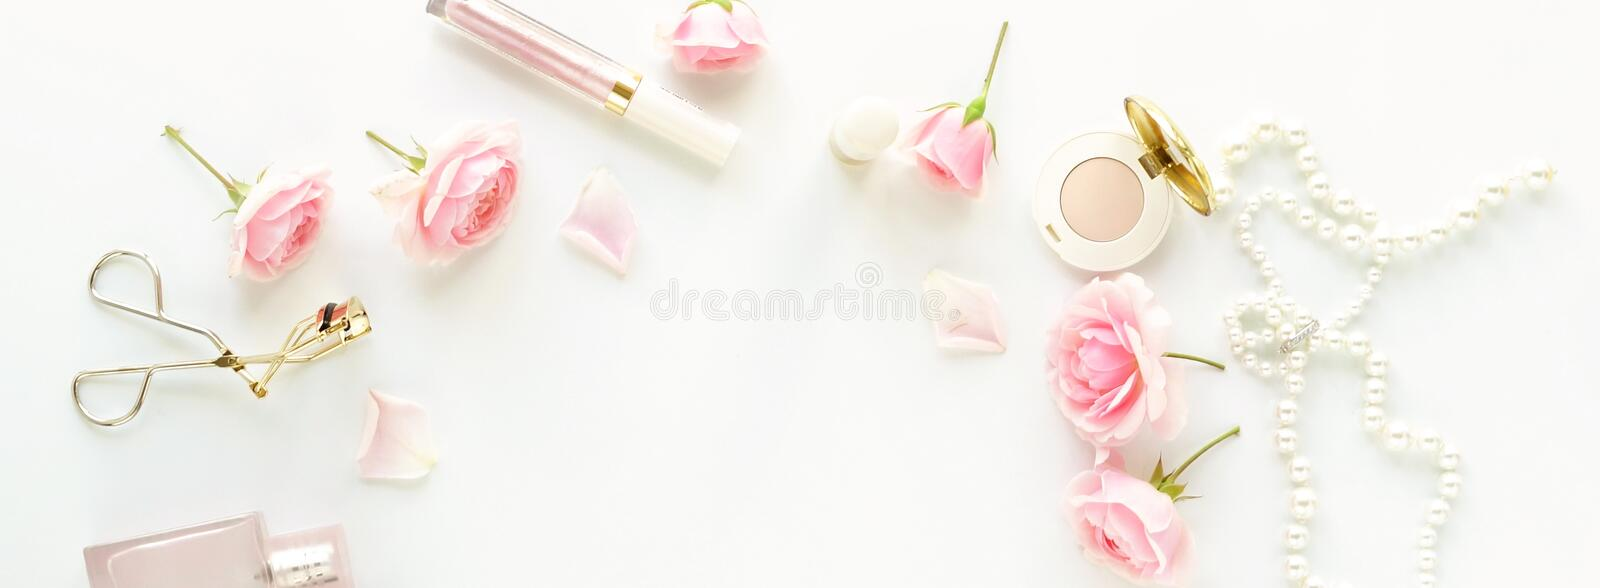 Beauty blog concept. Female make up accessories and roses royalty free stock images